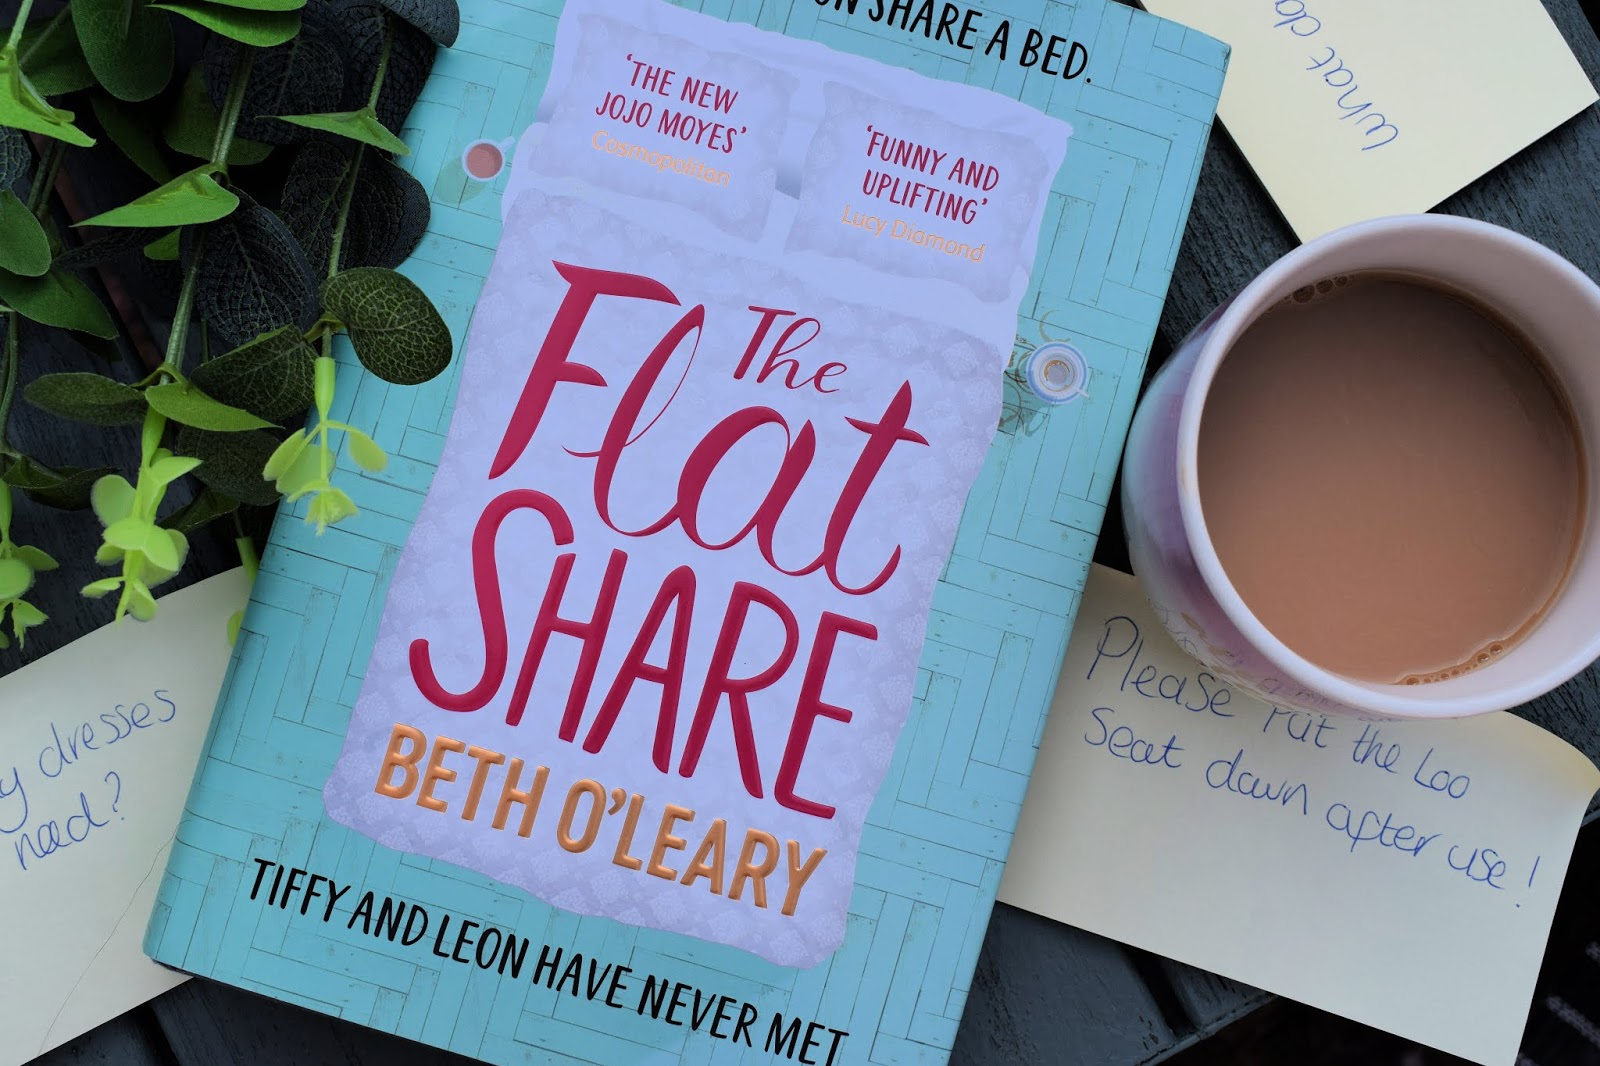 Book review - The Flatshare - Beth O'leary